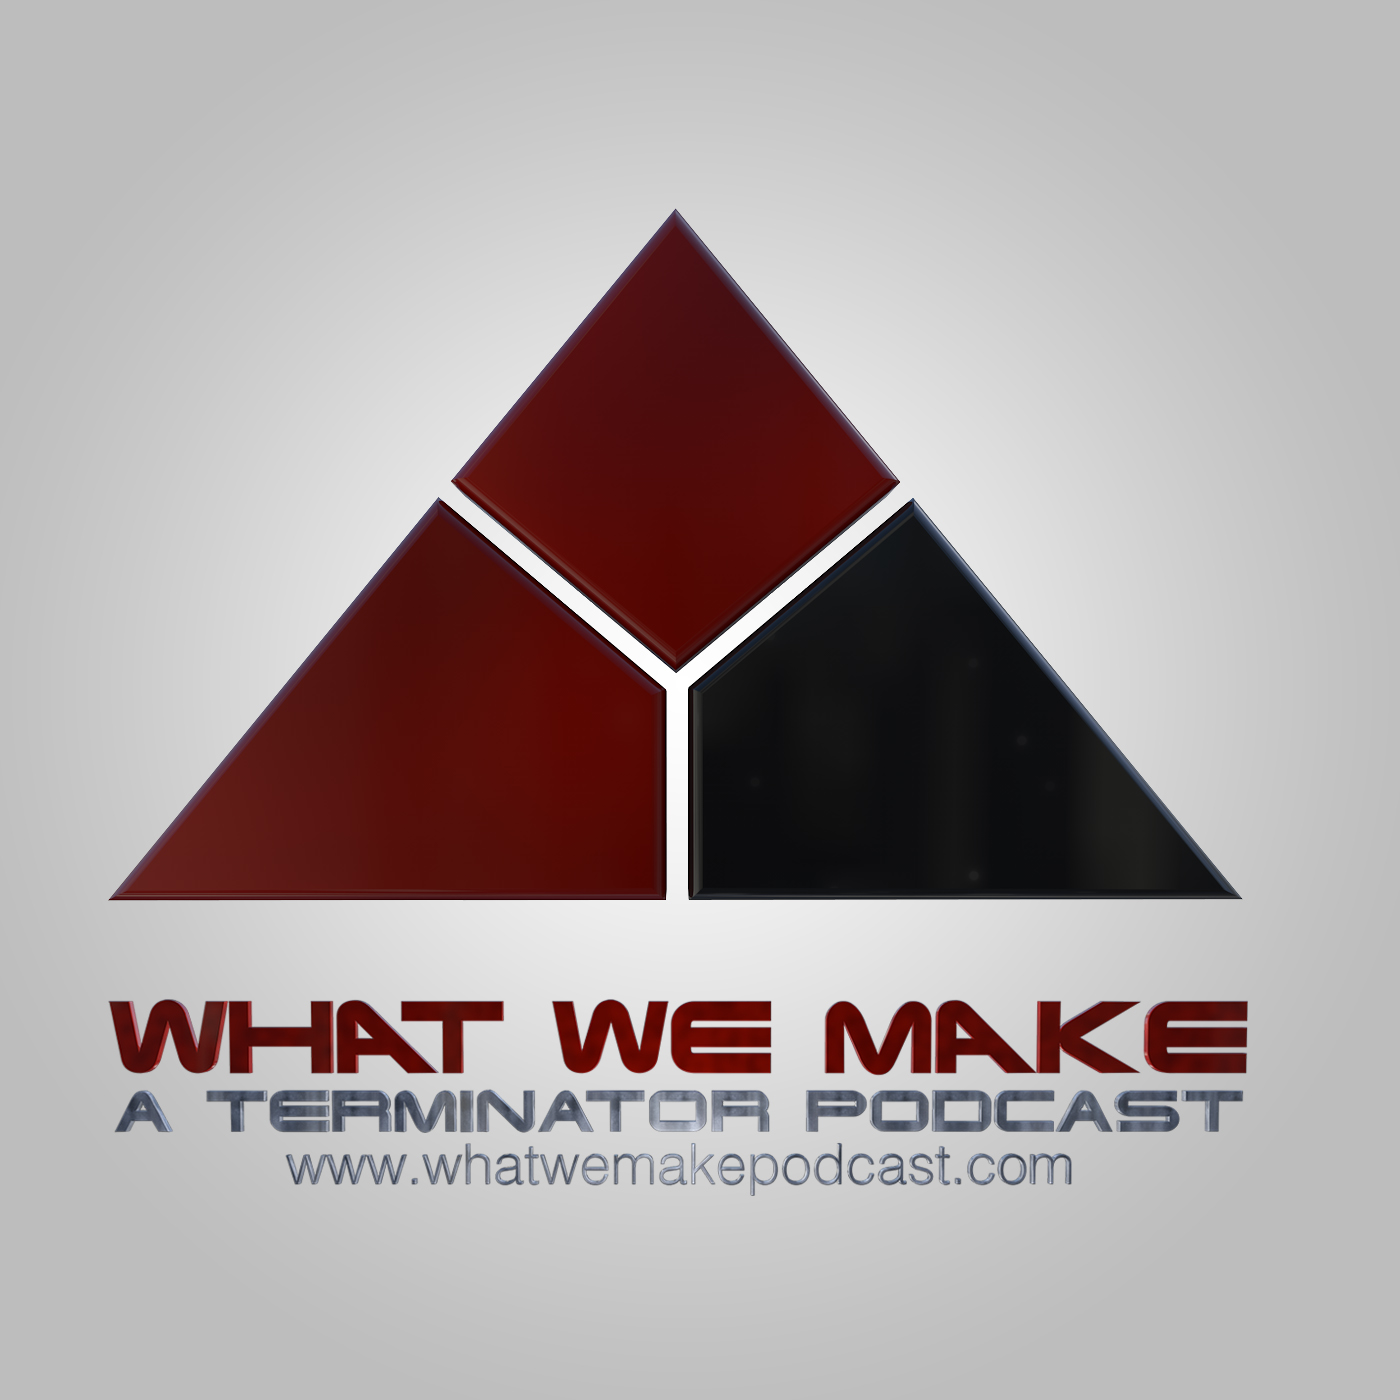 What We Make: A Terminator Podcast